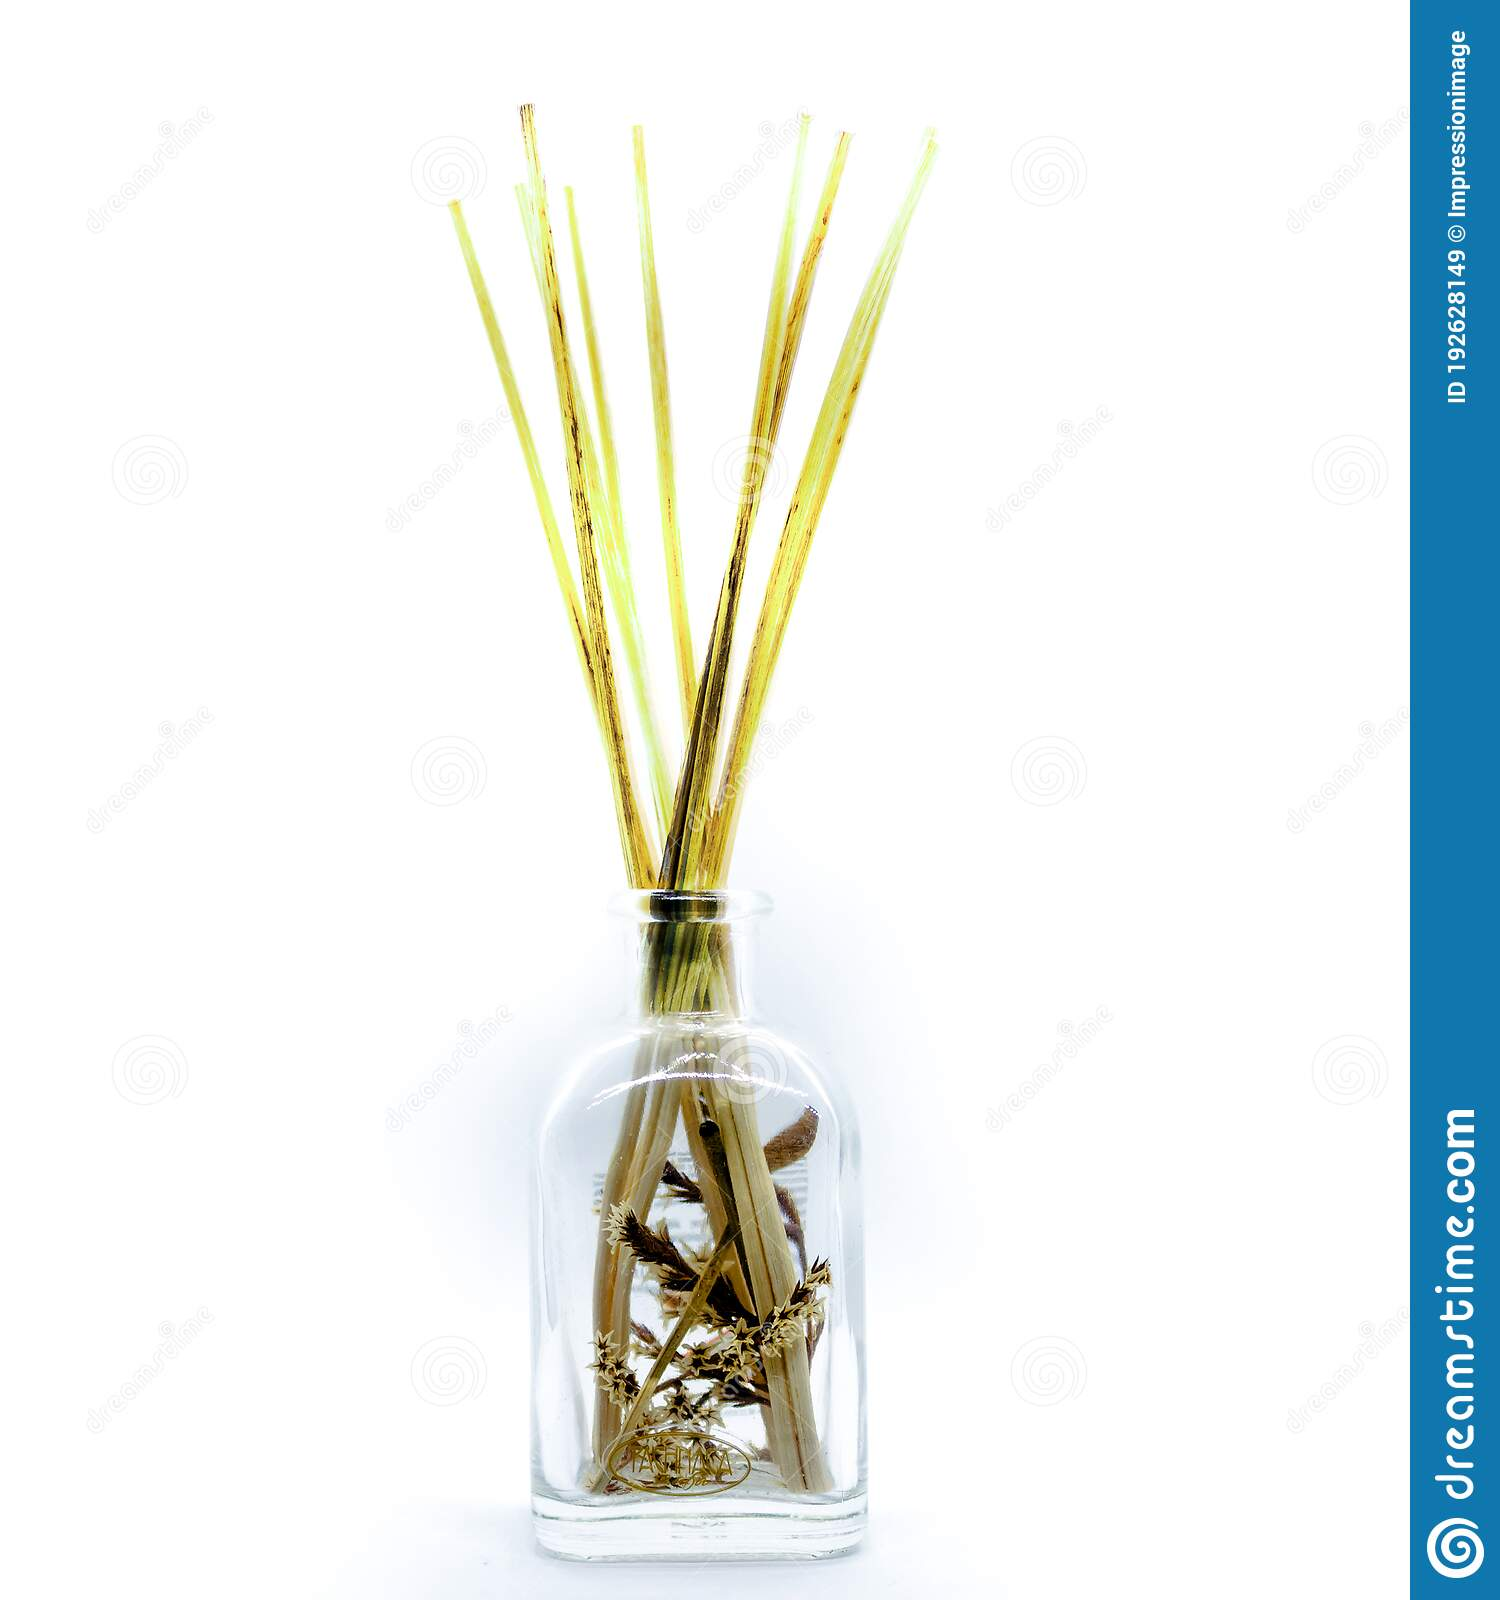 Close Up Of An Object With Wood Sticks In Liquid For Home Fragrance Or No Fire Aroma Diffuser With Sticks Stock Image Image Of Products Background 192628149